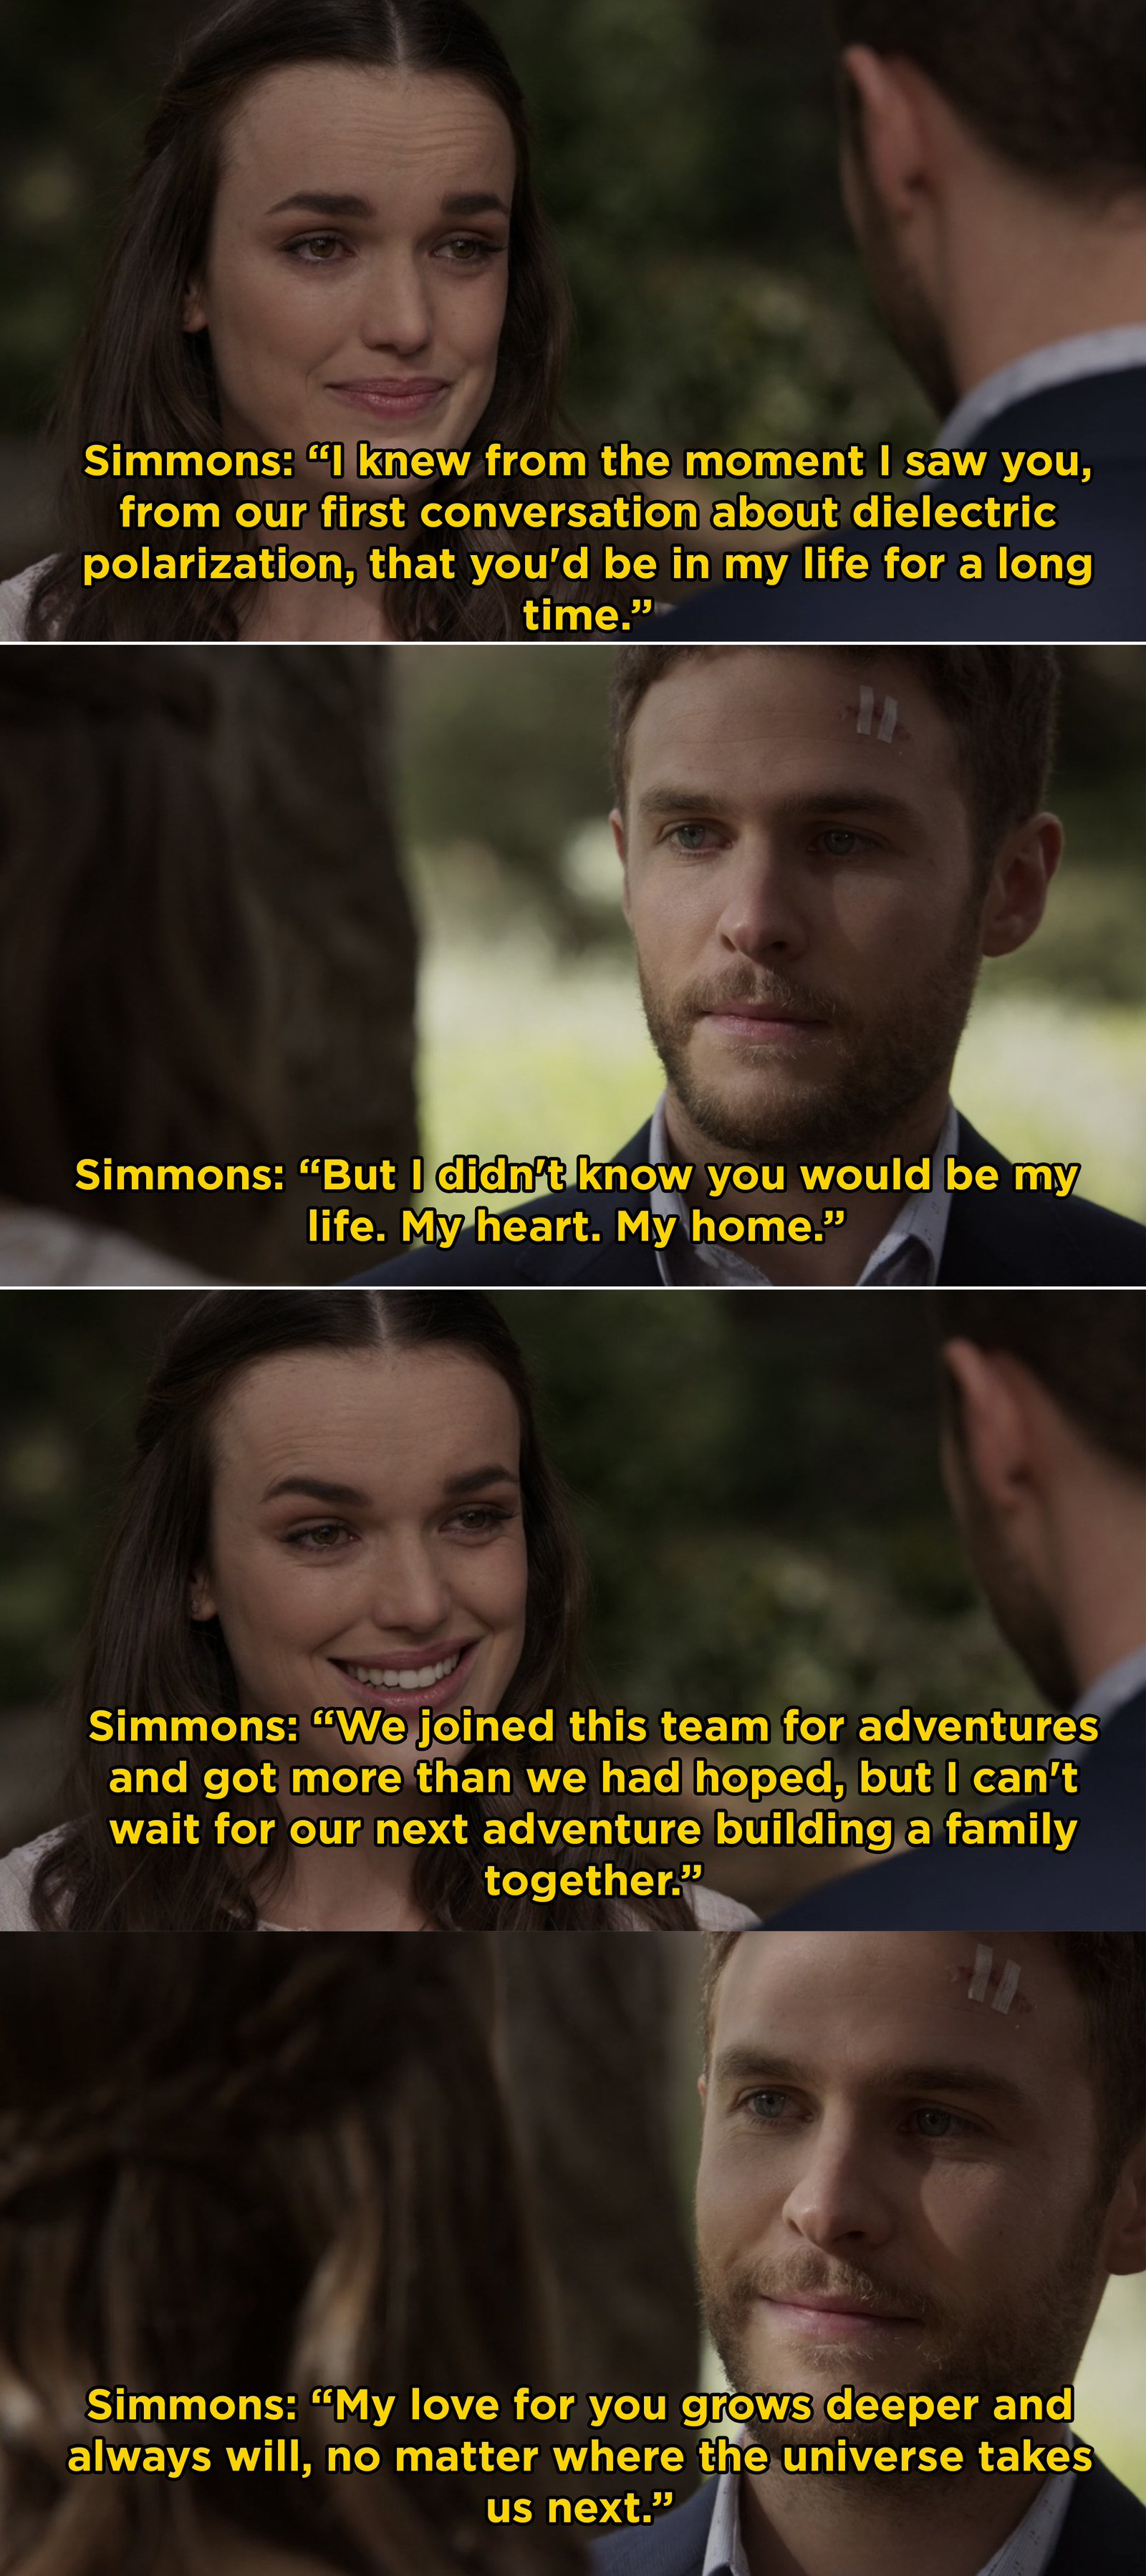 Simmons delivered these heartbreaking and beautiful vows to Fitz on their wedding day in  Agents of S.H.I.E.L.D.